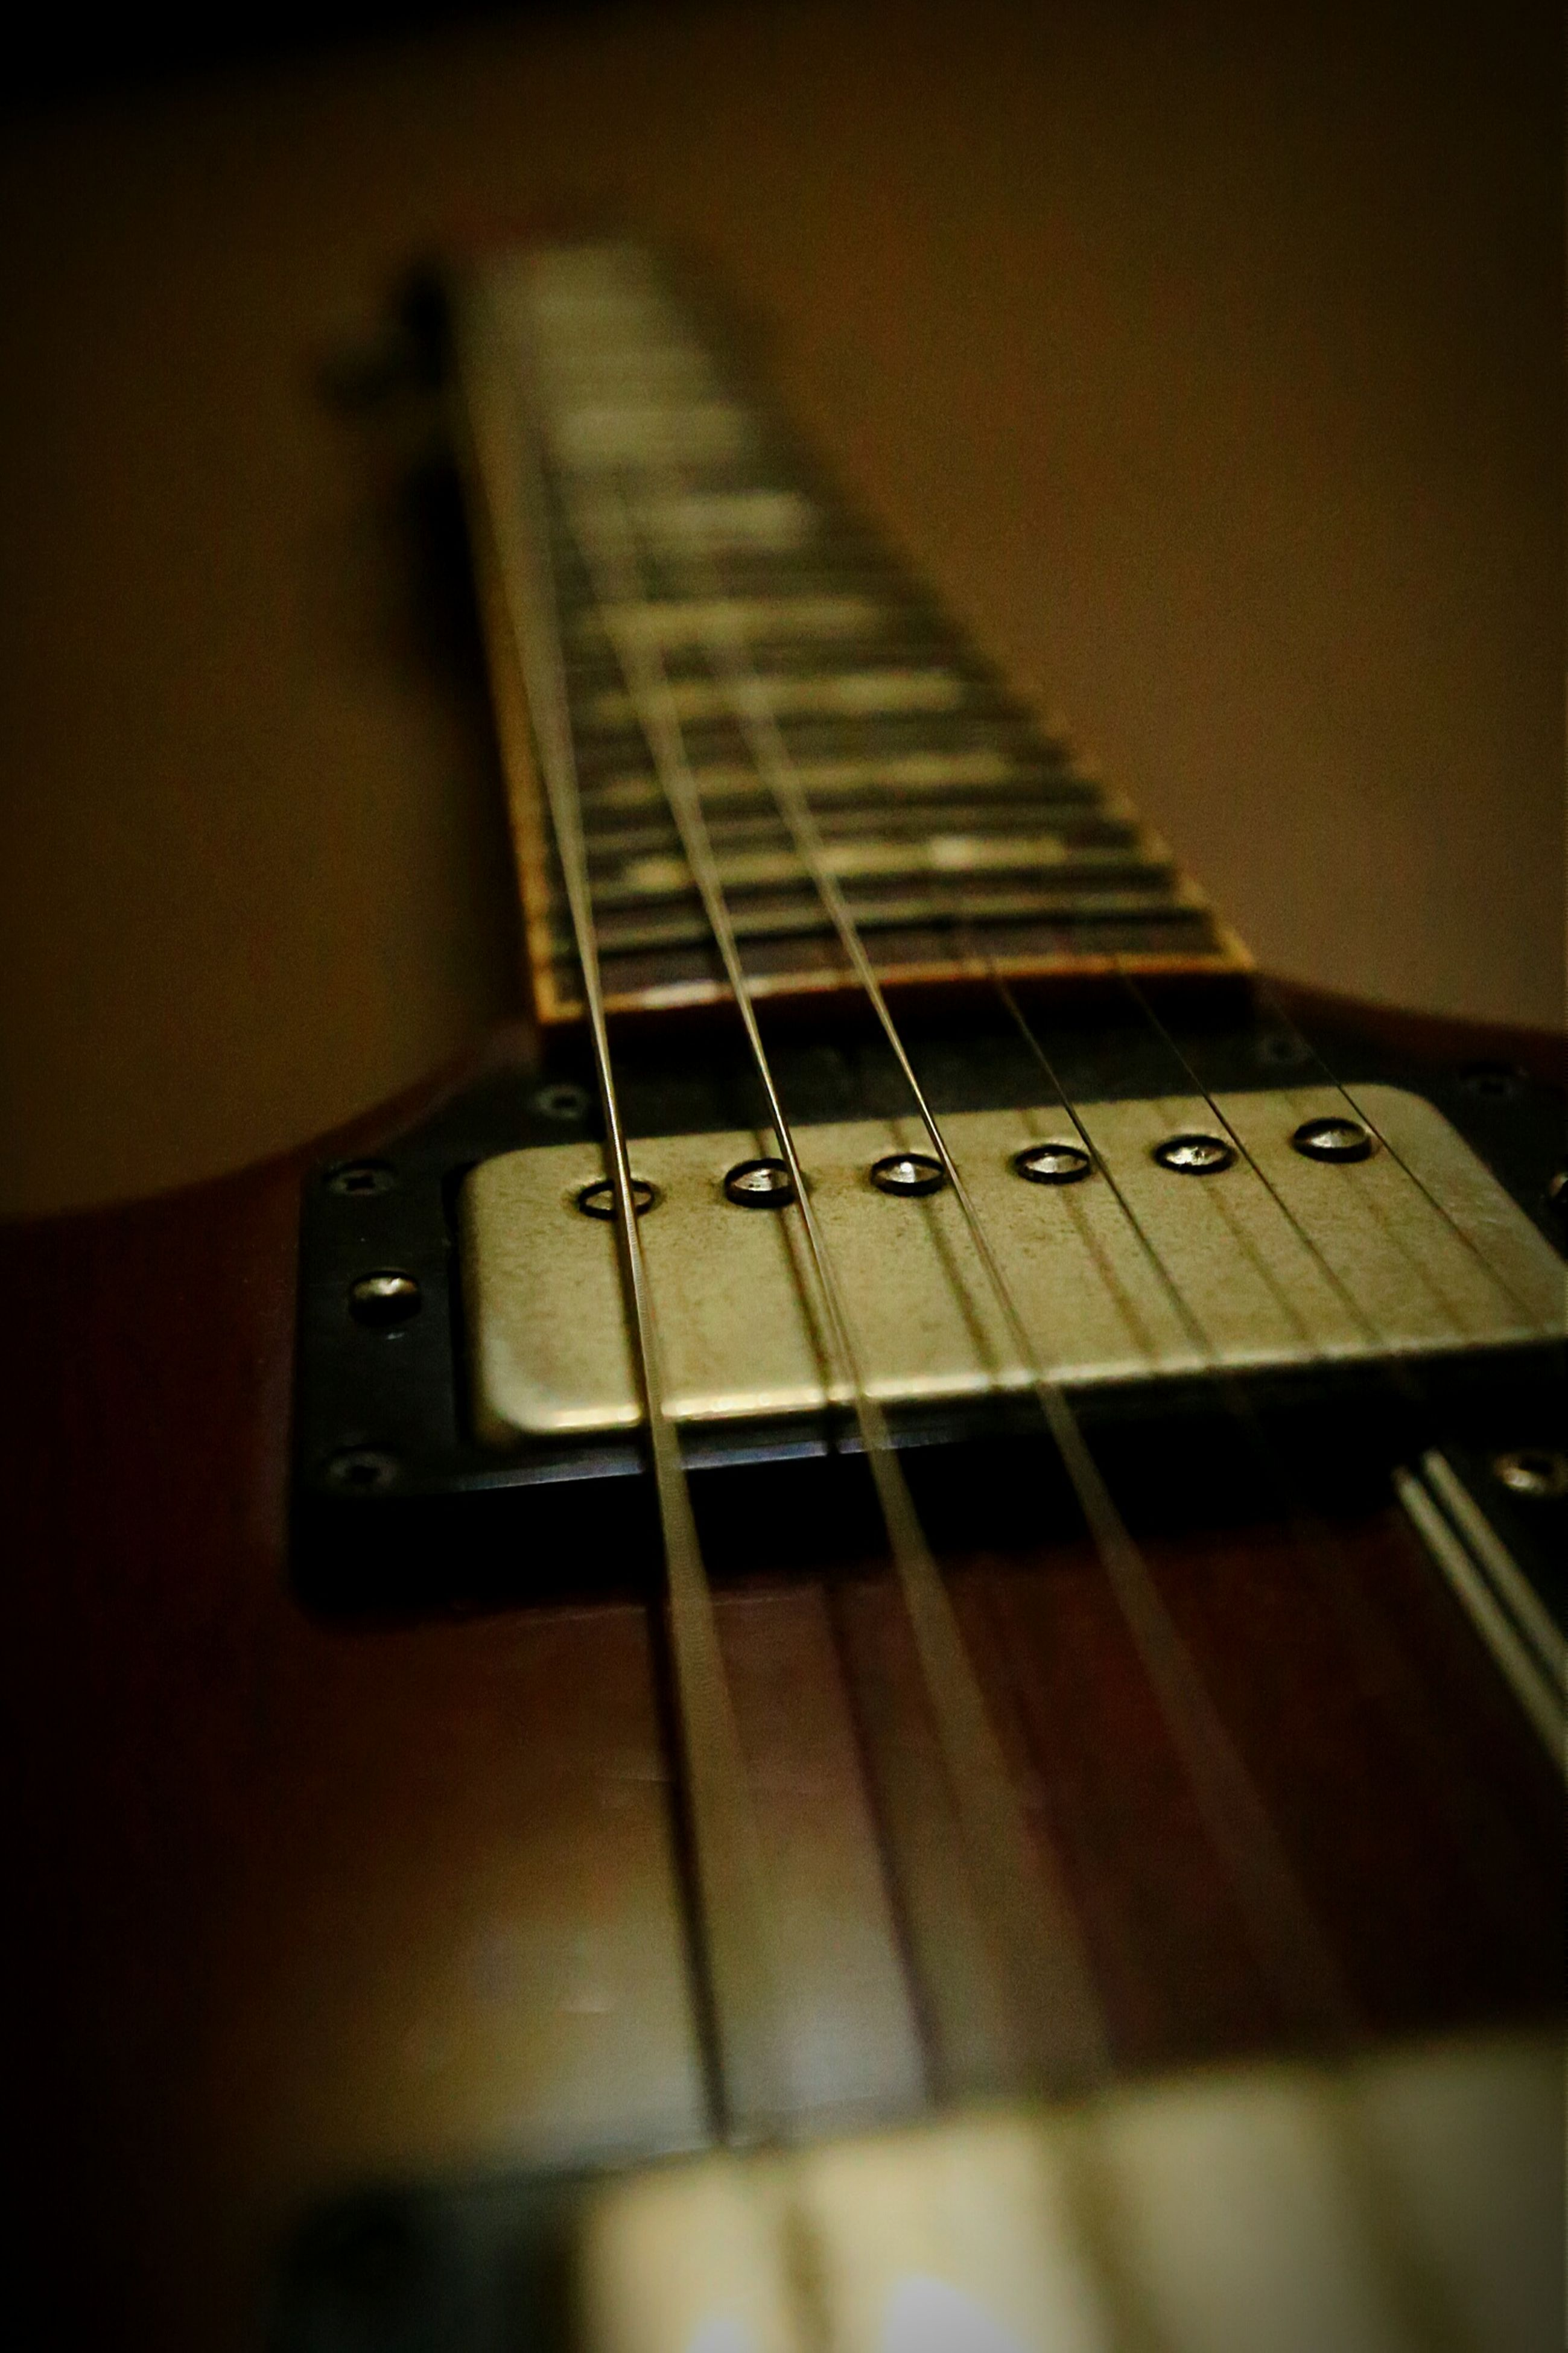 music, indoors, musical instrument, arts culture and entertainment, musical equipment, guitar, musical instrument string, piano key, technology, piano, close-up, selective focus, string instrument, acoustic guitar, still life, hobbies, audio equipment, wireless technology, focus on foreground, sound recording equipment